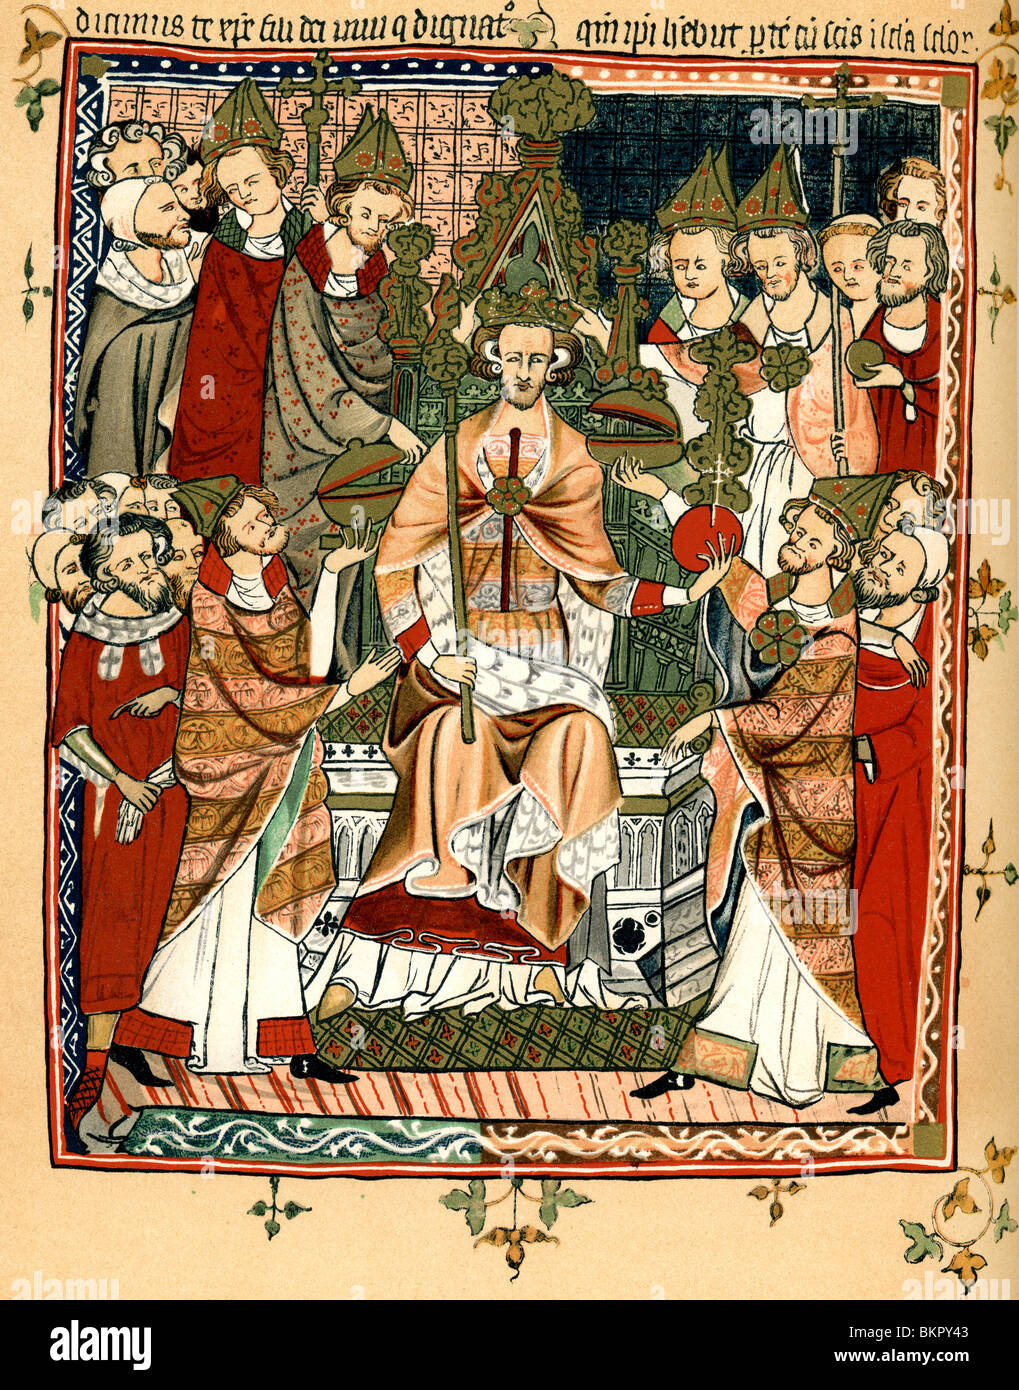 Coronation of a king in the early fourteenth century. - Stock Image